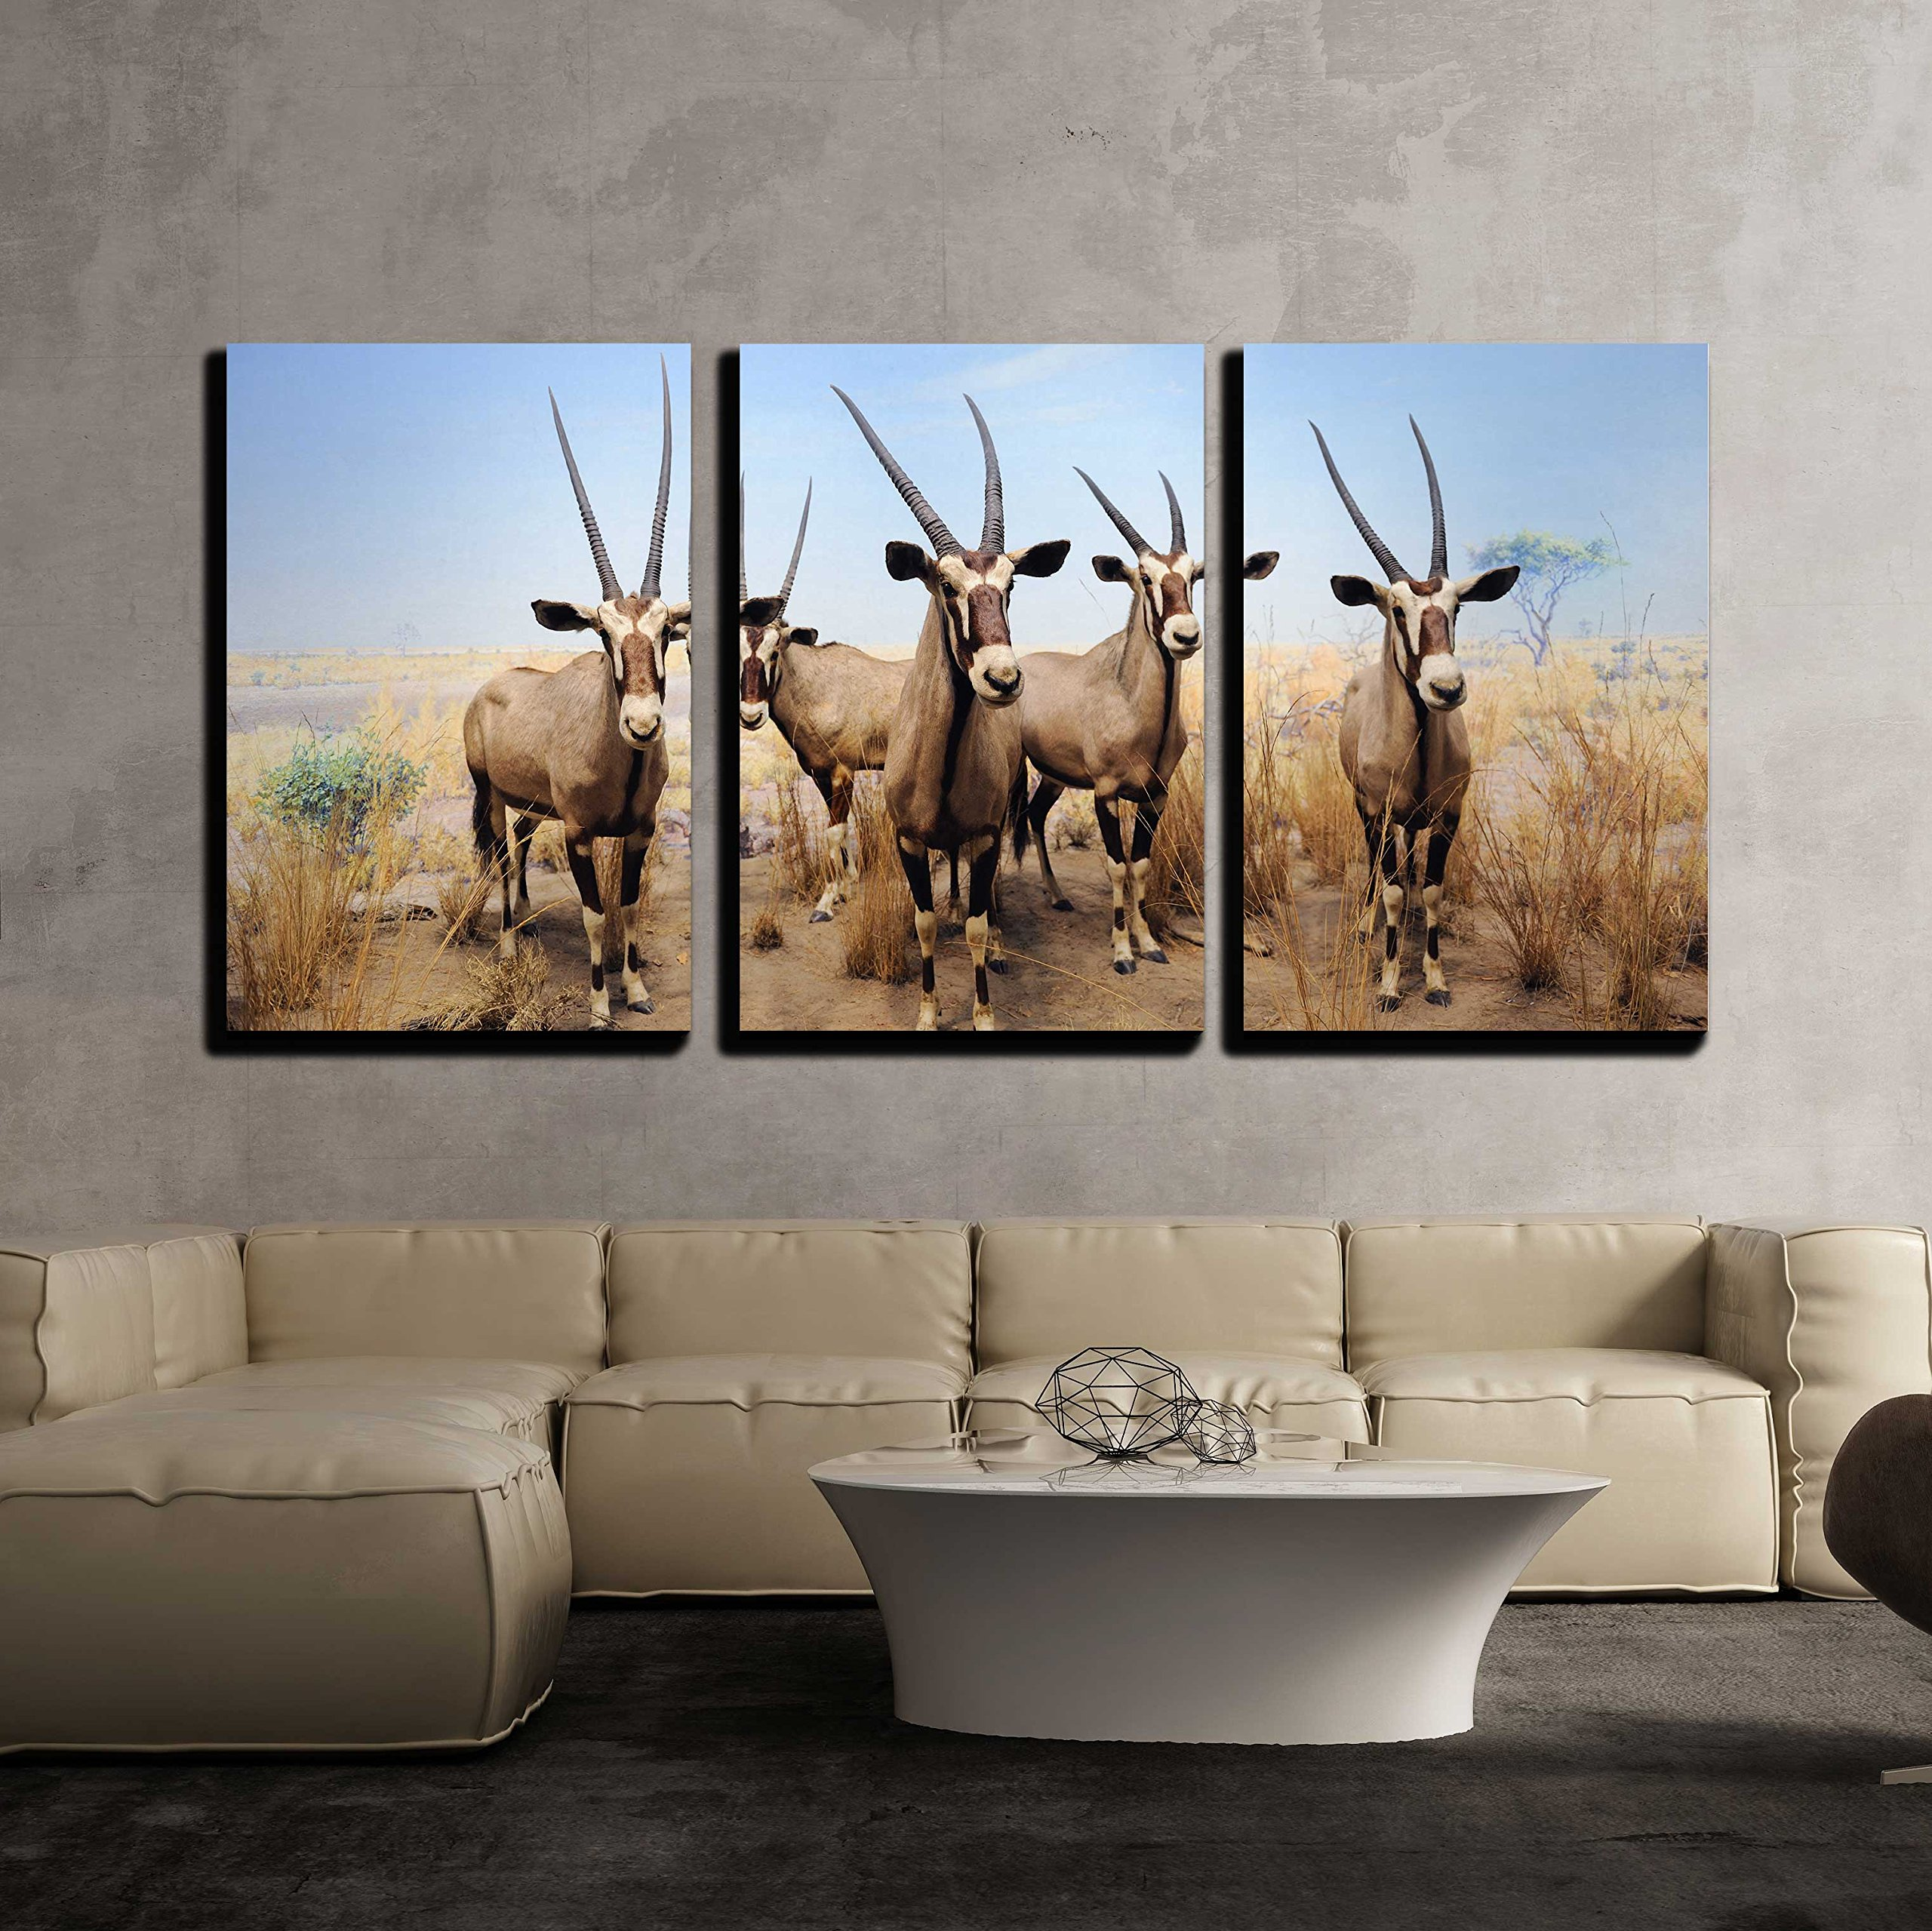 wall26 - 3 Piece Canvas Wall Art - the American Museum of Natural History in Manhattan, New York City. - Modern Home Decor Stretched and Framed Ready to Hang - 24''x36''x3 Panels by wall26